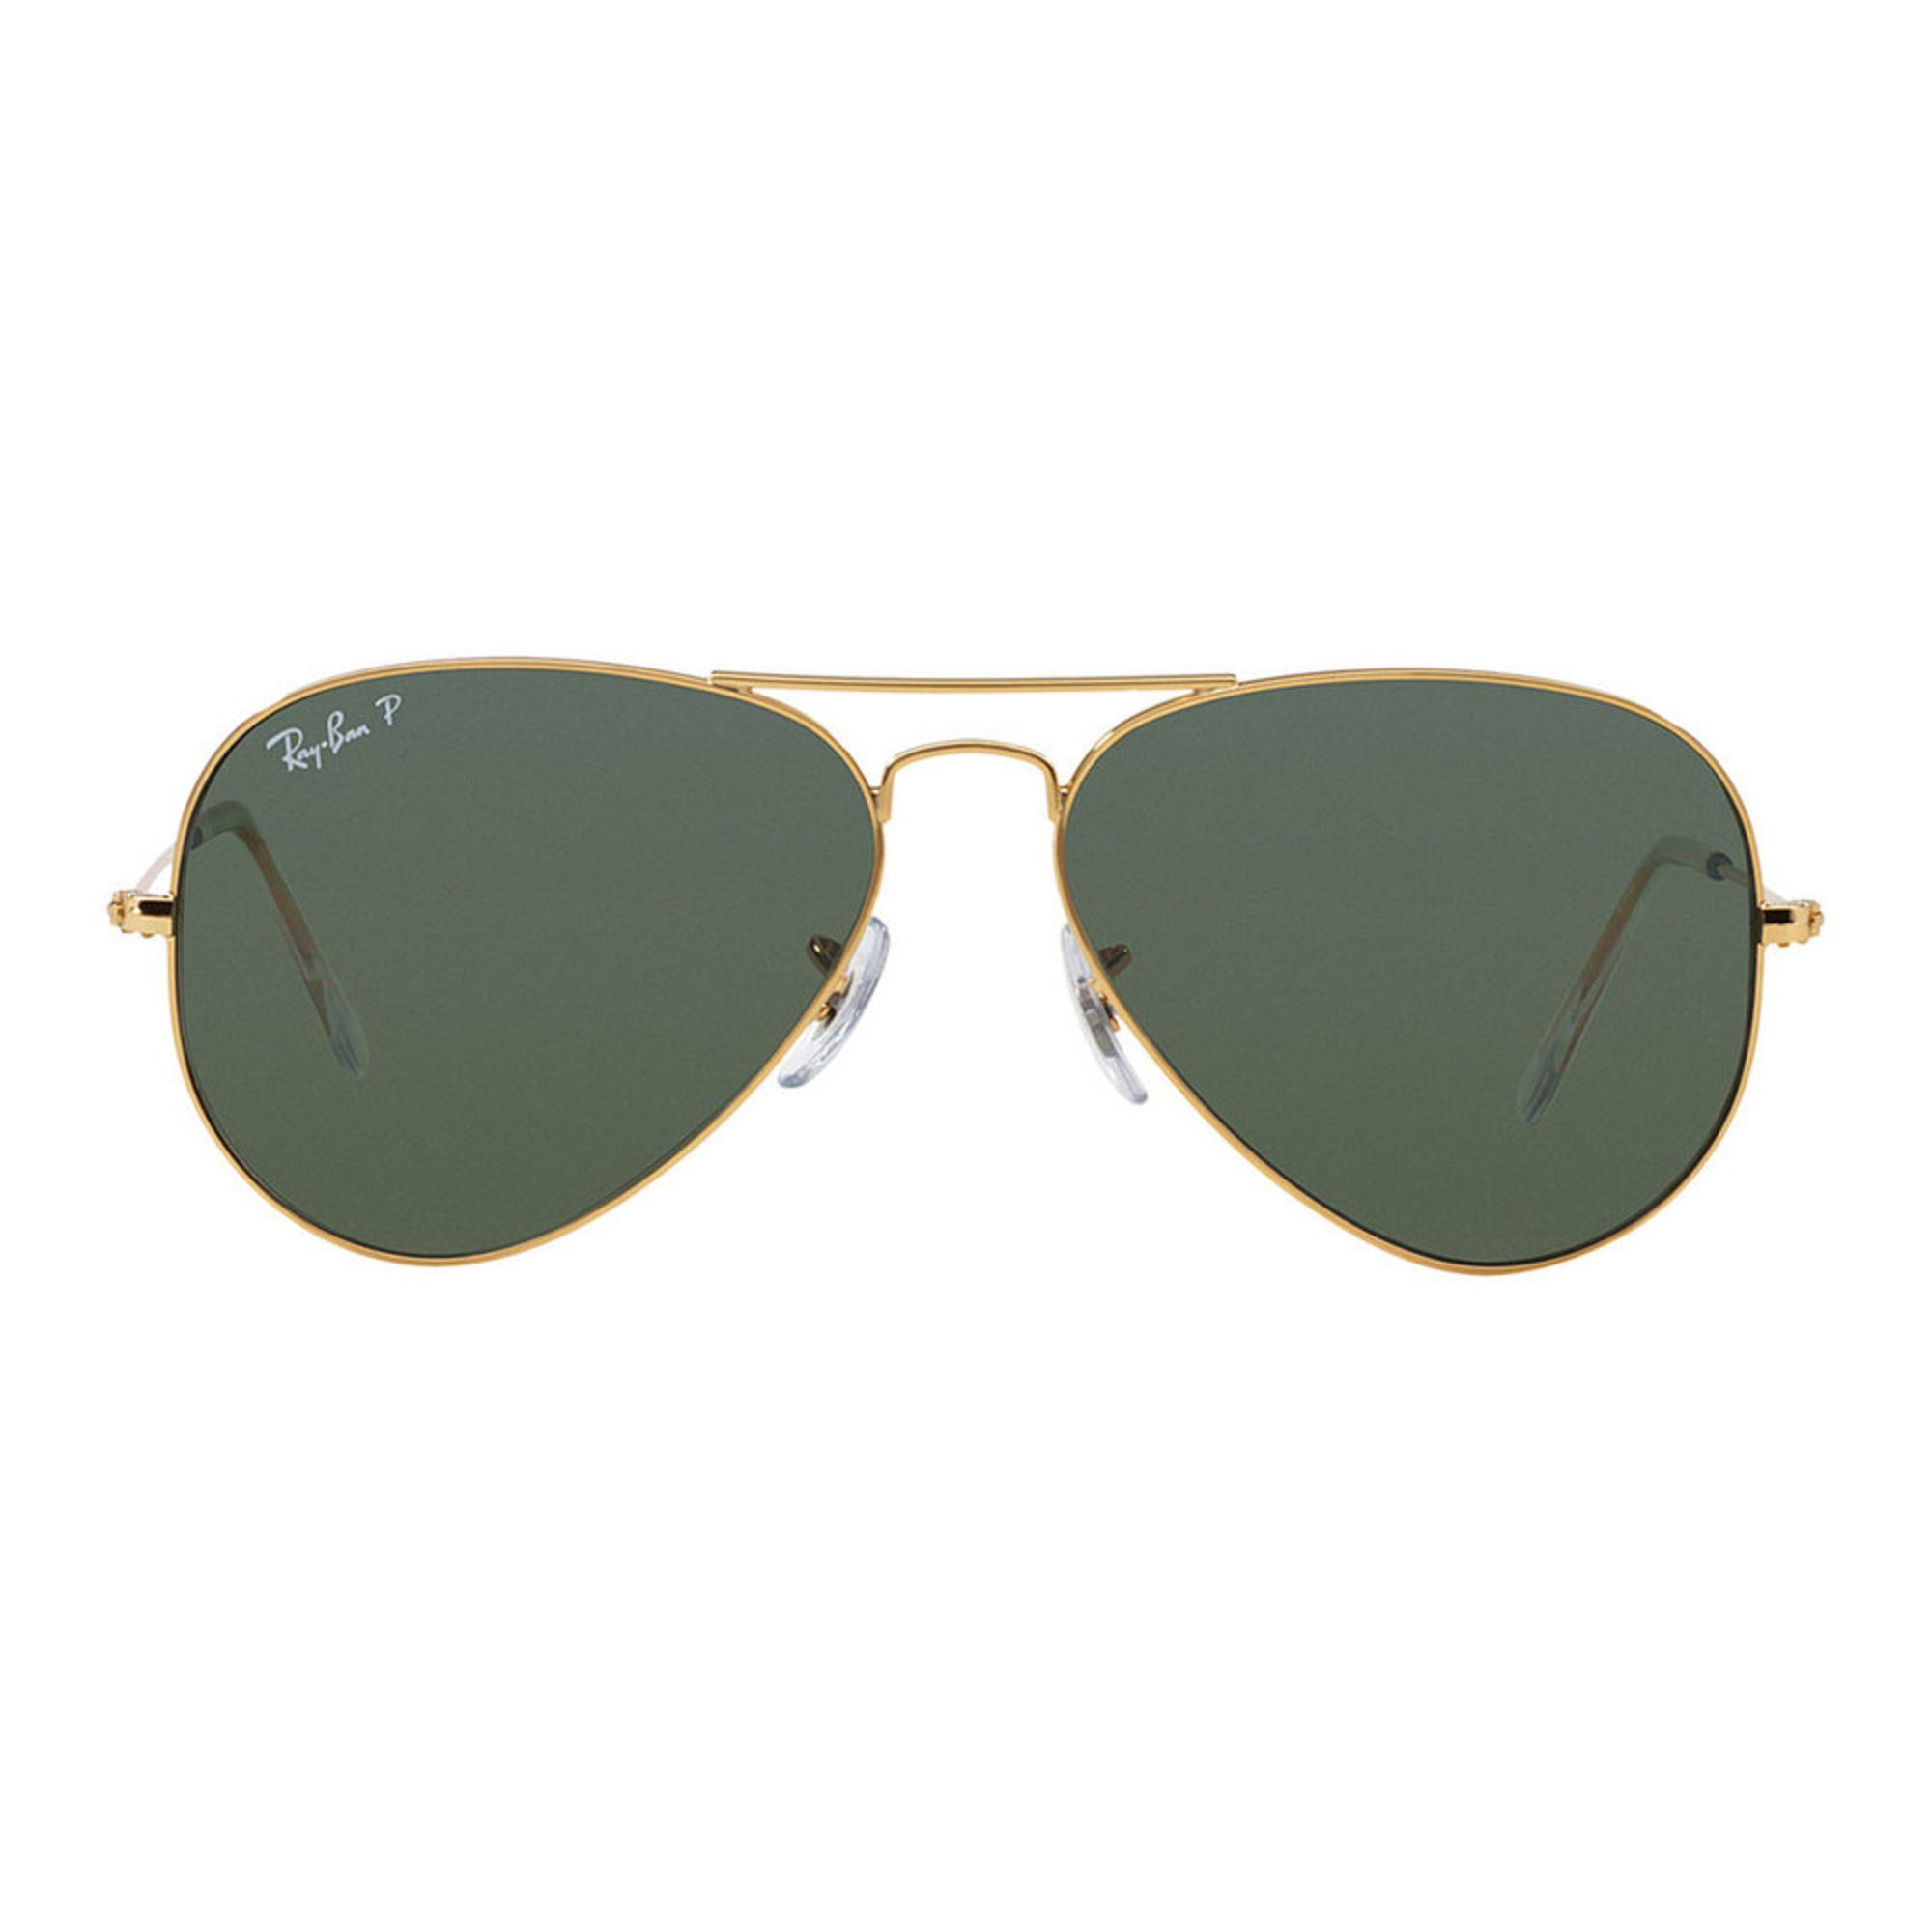 8392b93c61 Ray-Ban. Ray-Ban Men s Polarized Classic Aviator Sunglasses